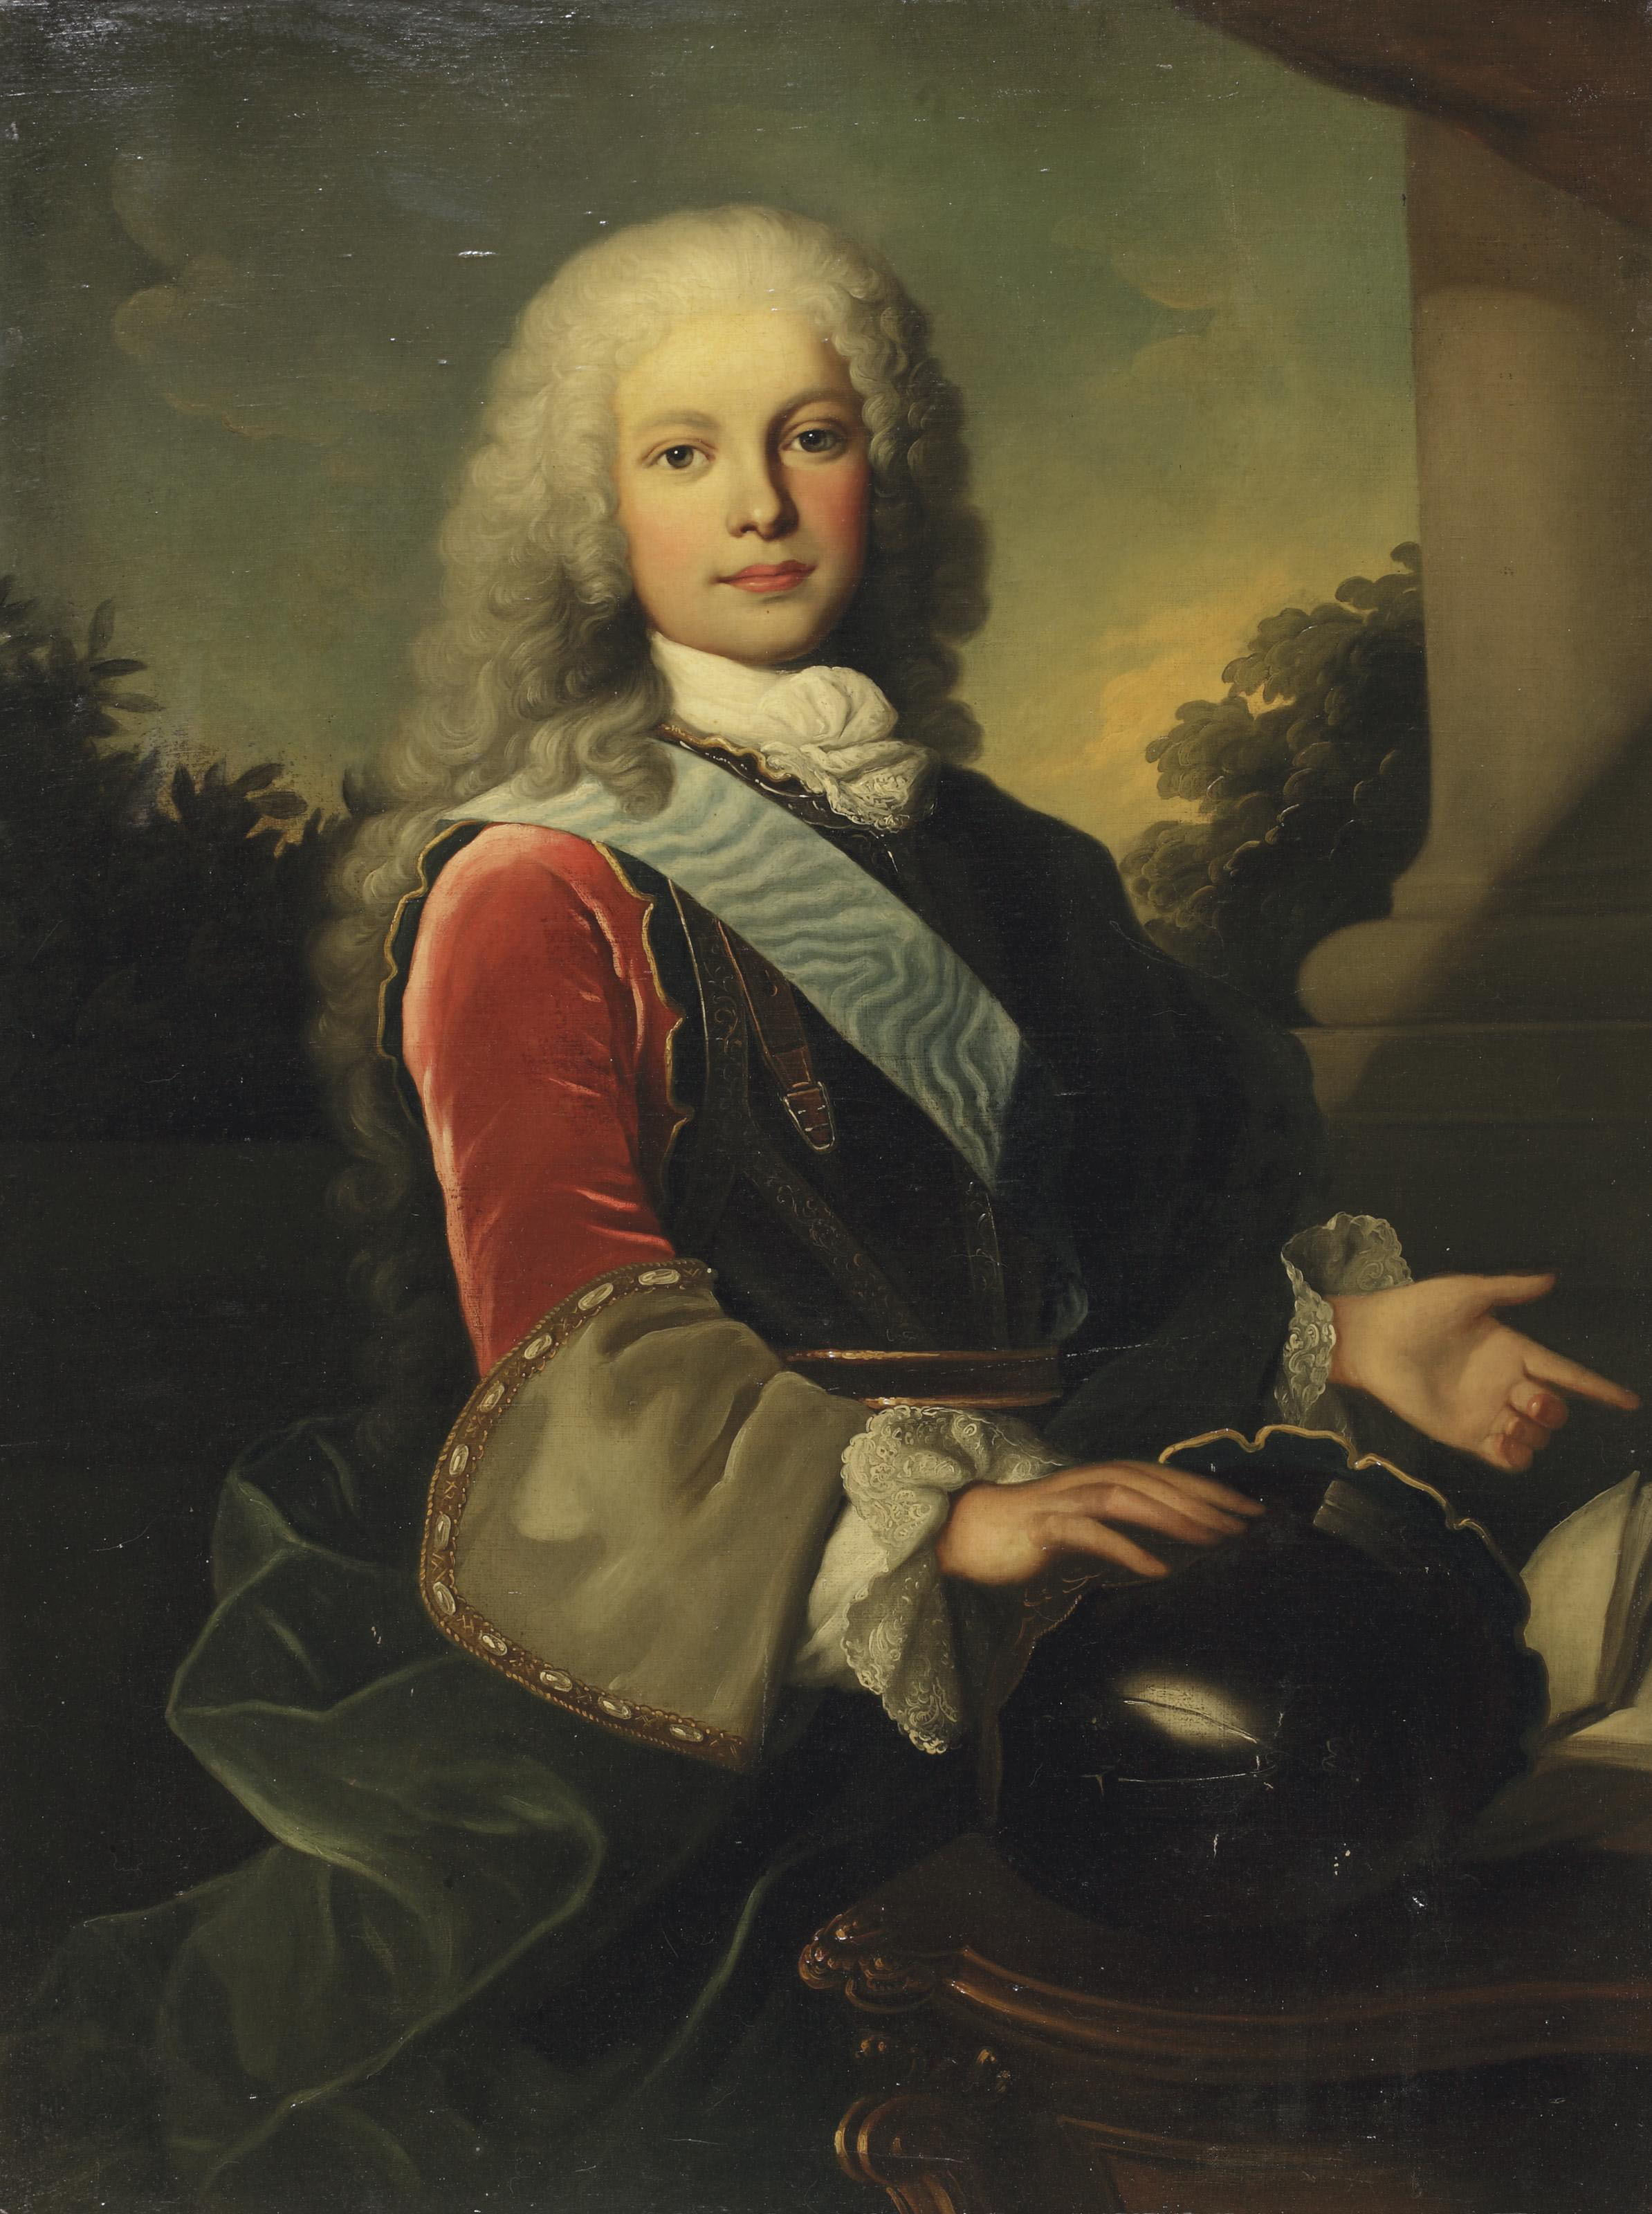 Portrait of King Ferdinand VI of Spain (1713-1759) as Prince of Asturias, half-length, standing before a 'portico', his hand on his helmet on a table, a landscape beyond